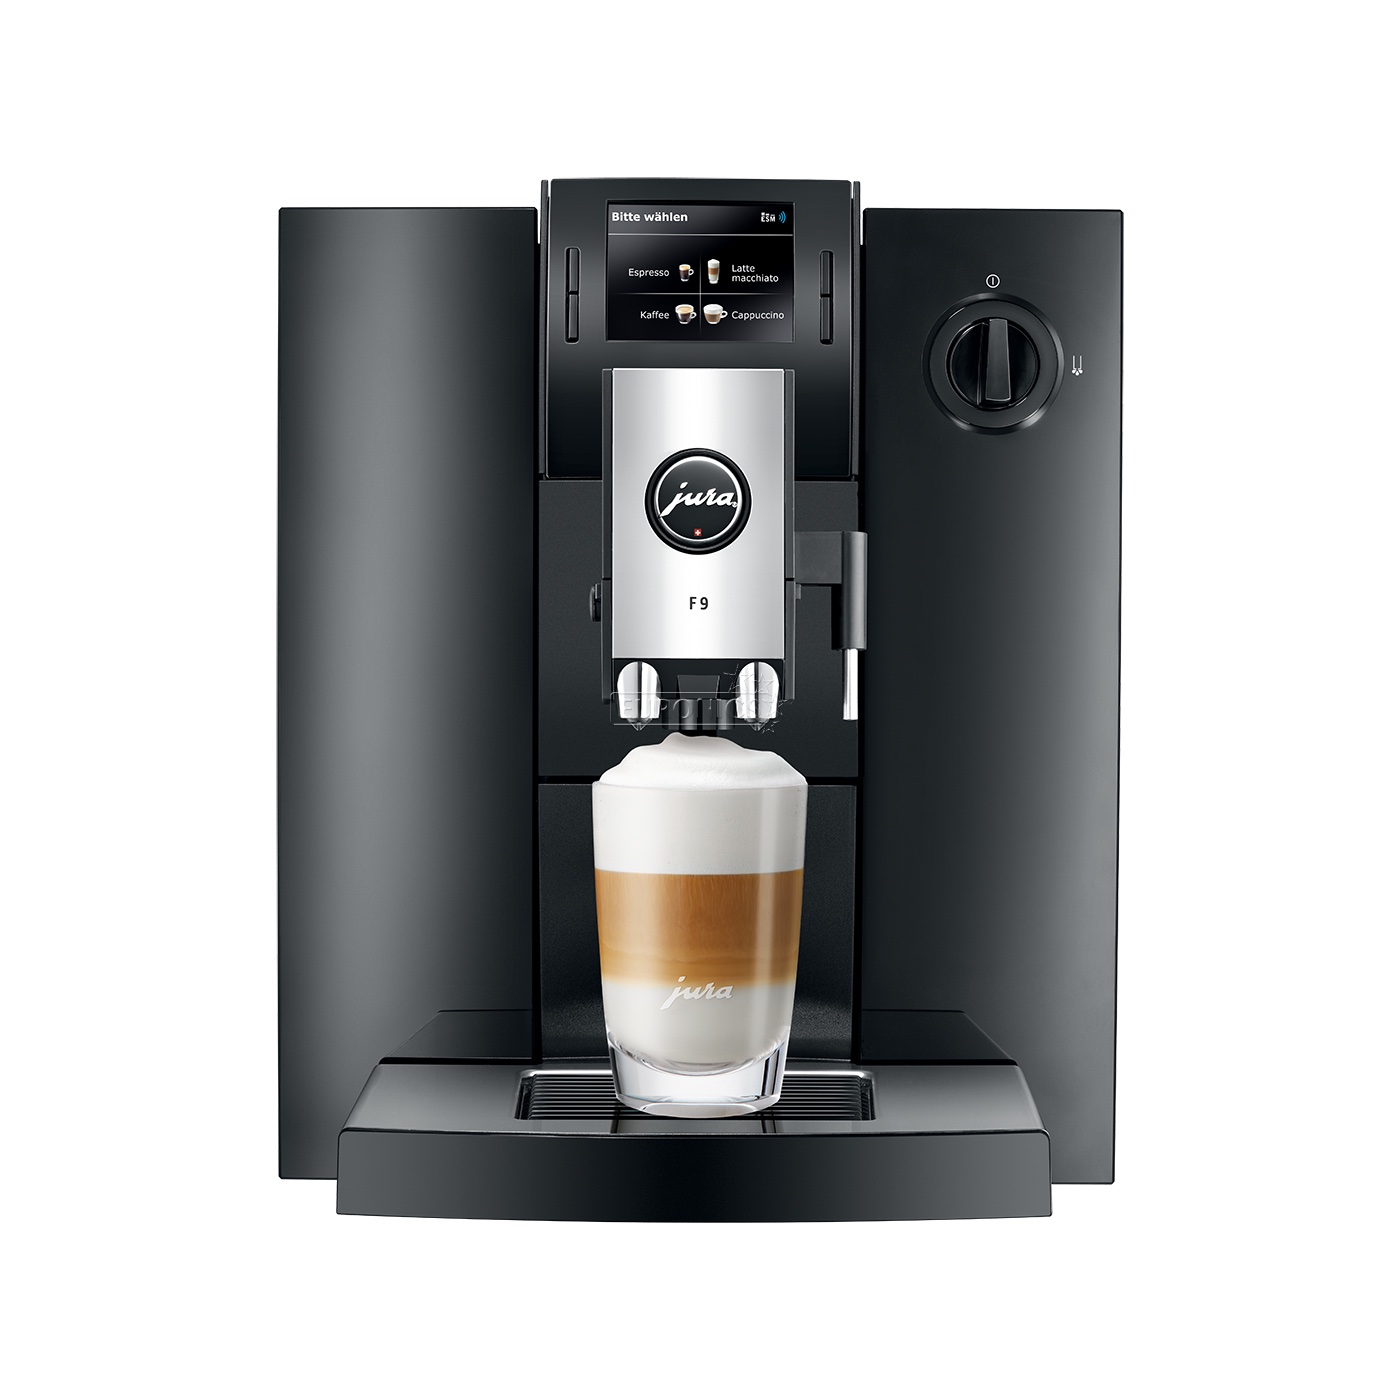 jura impressa f9 coffee vending machines coffee machine rentals. Black Bedroom Furniture Sets. Home Design Ideas